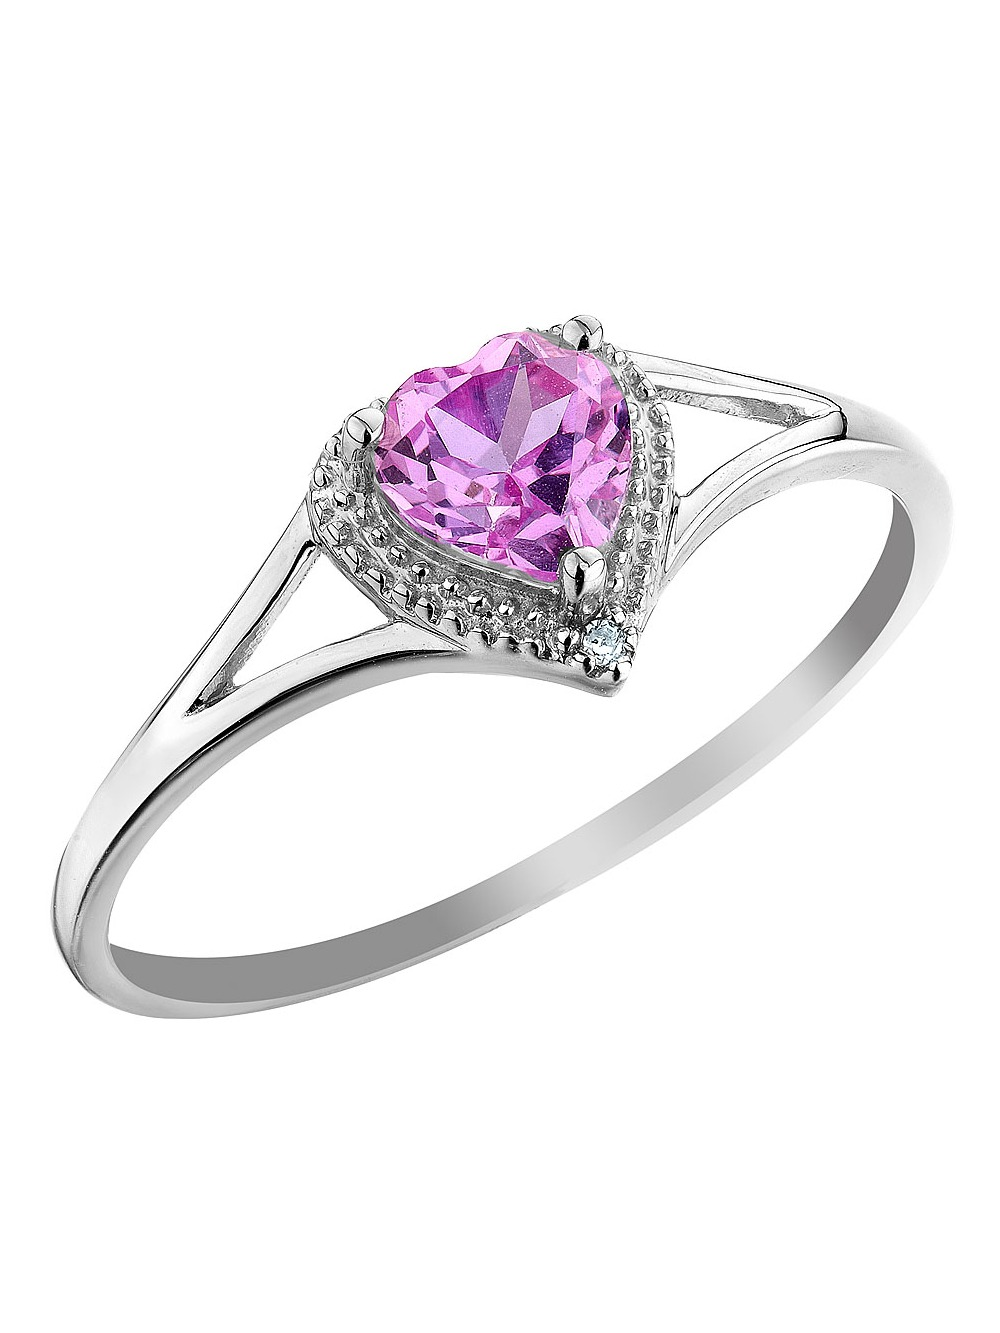 Created Pink Sapphire Heart Ring with Diamond 1/2 Carat (ctw) in 10K White Gold